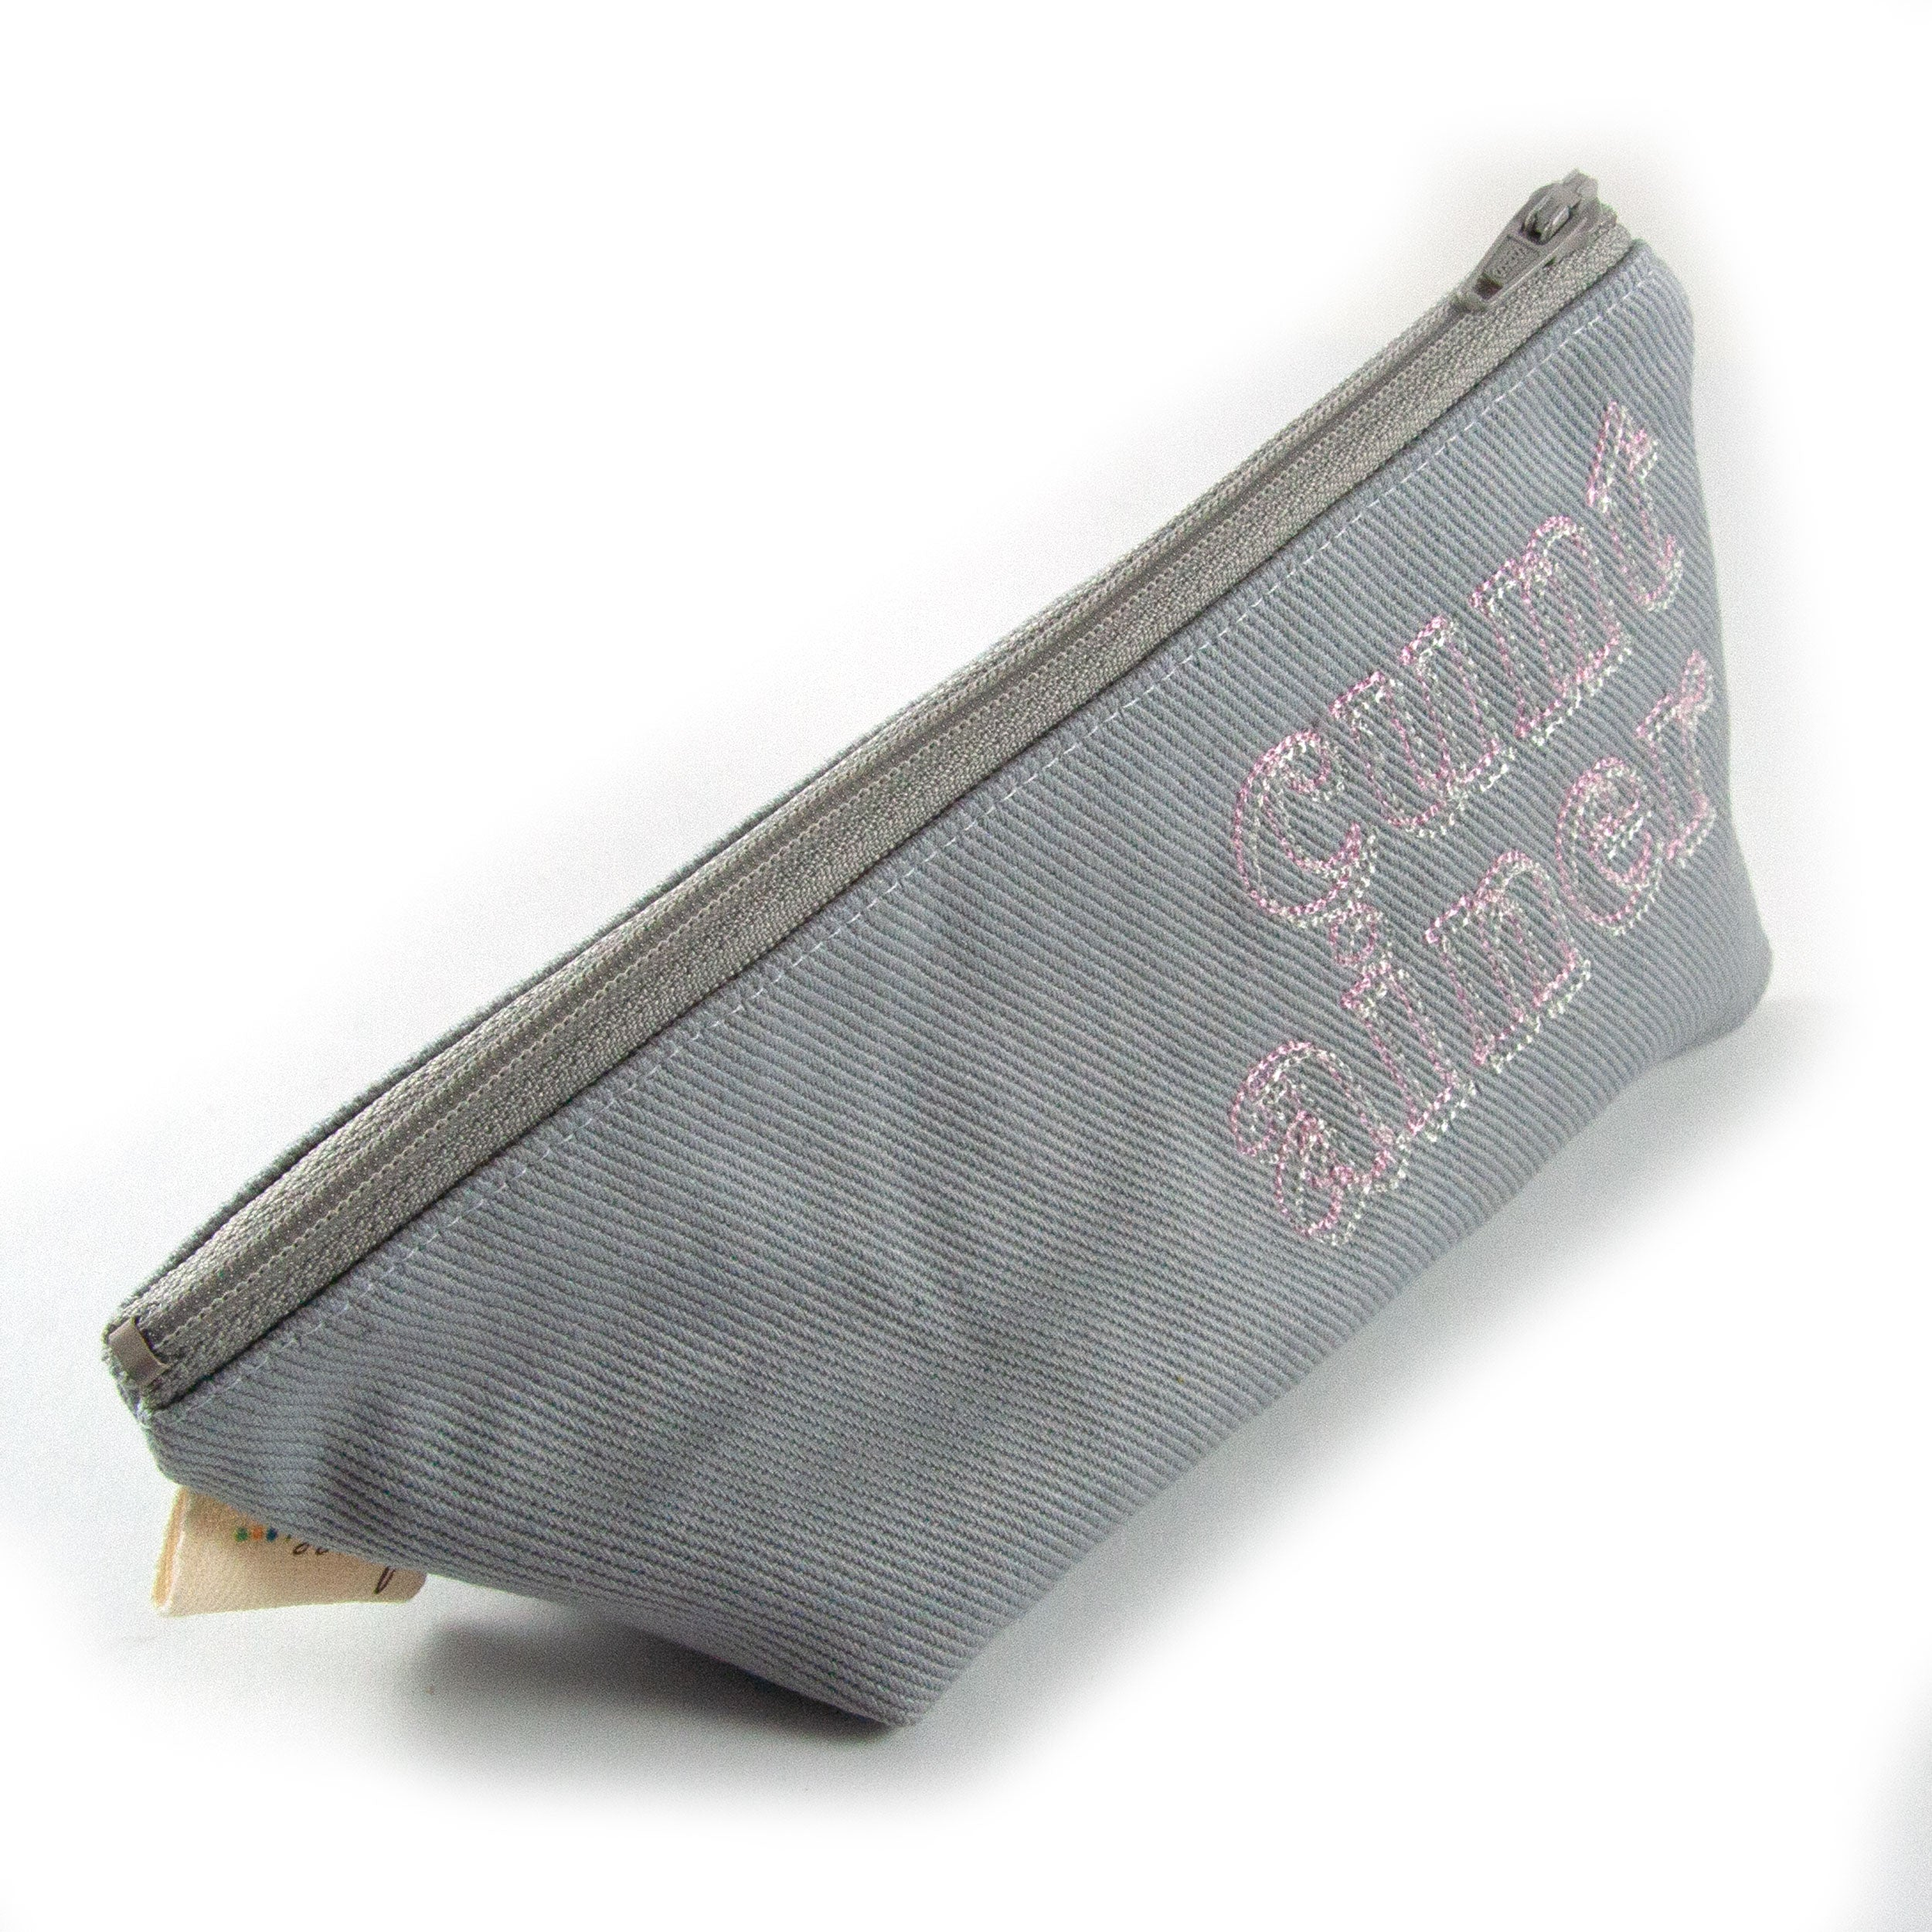 Cuntainer Wedge Pouch